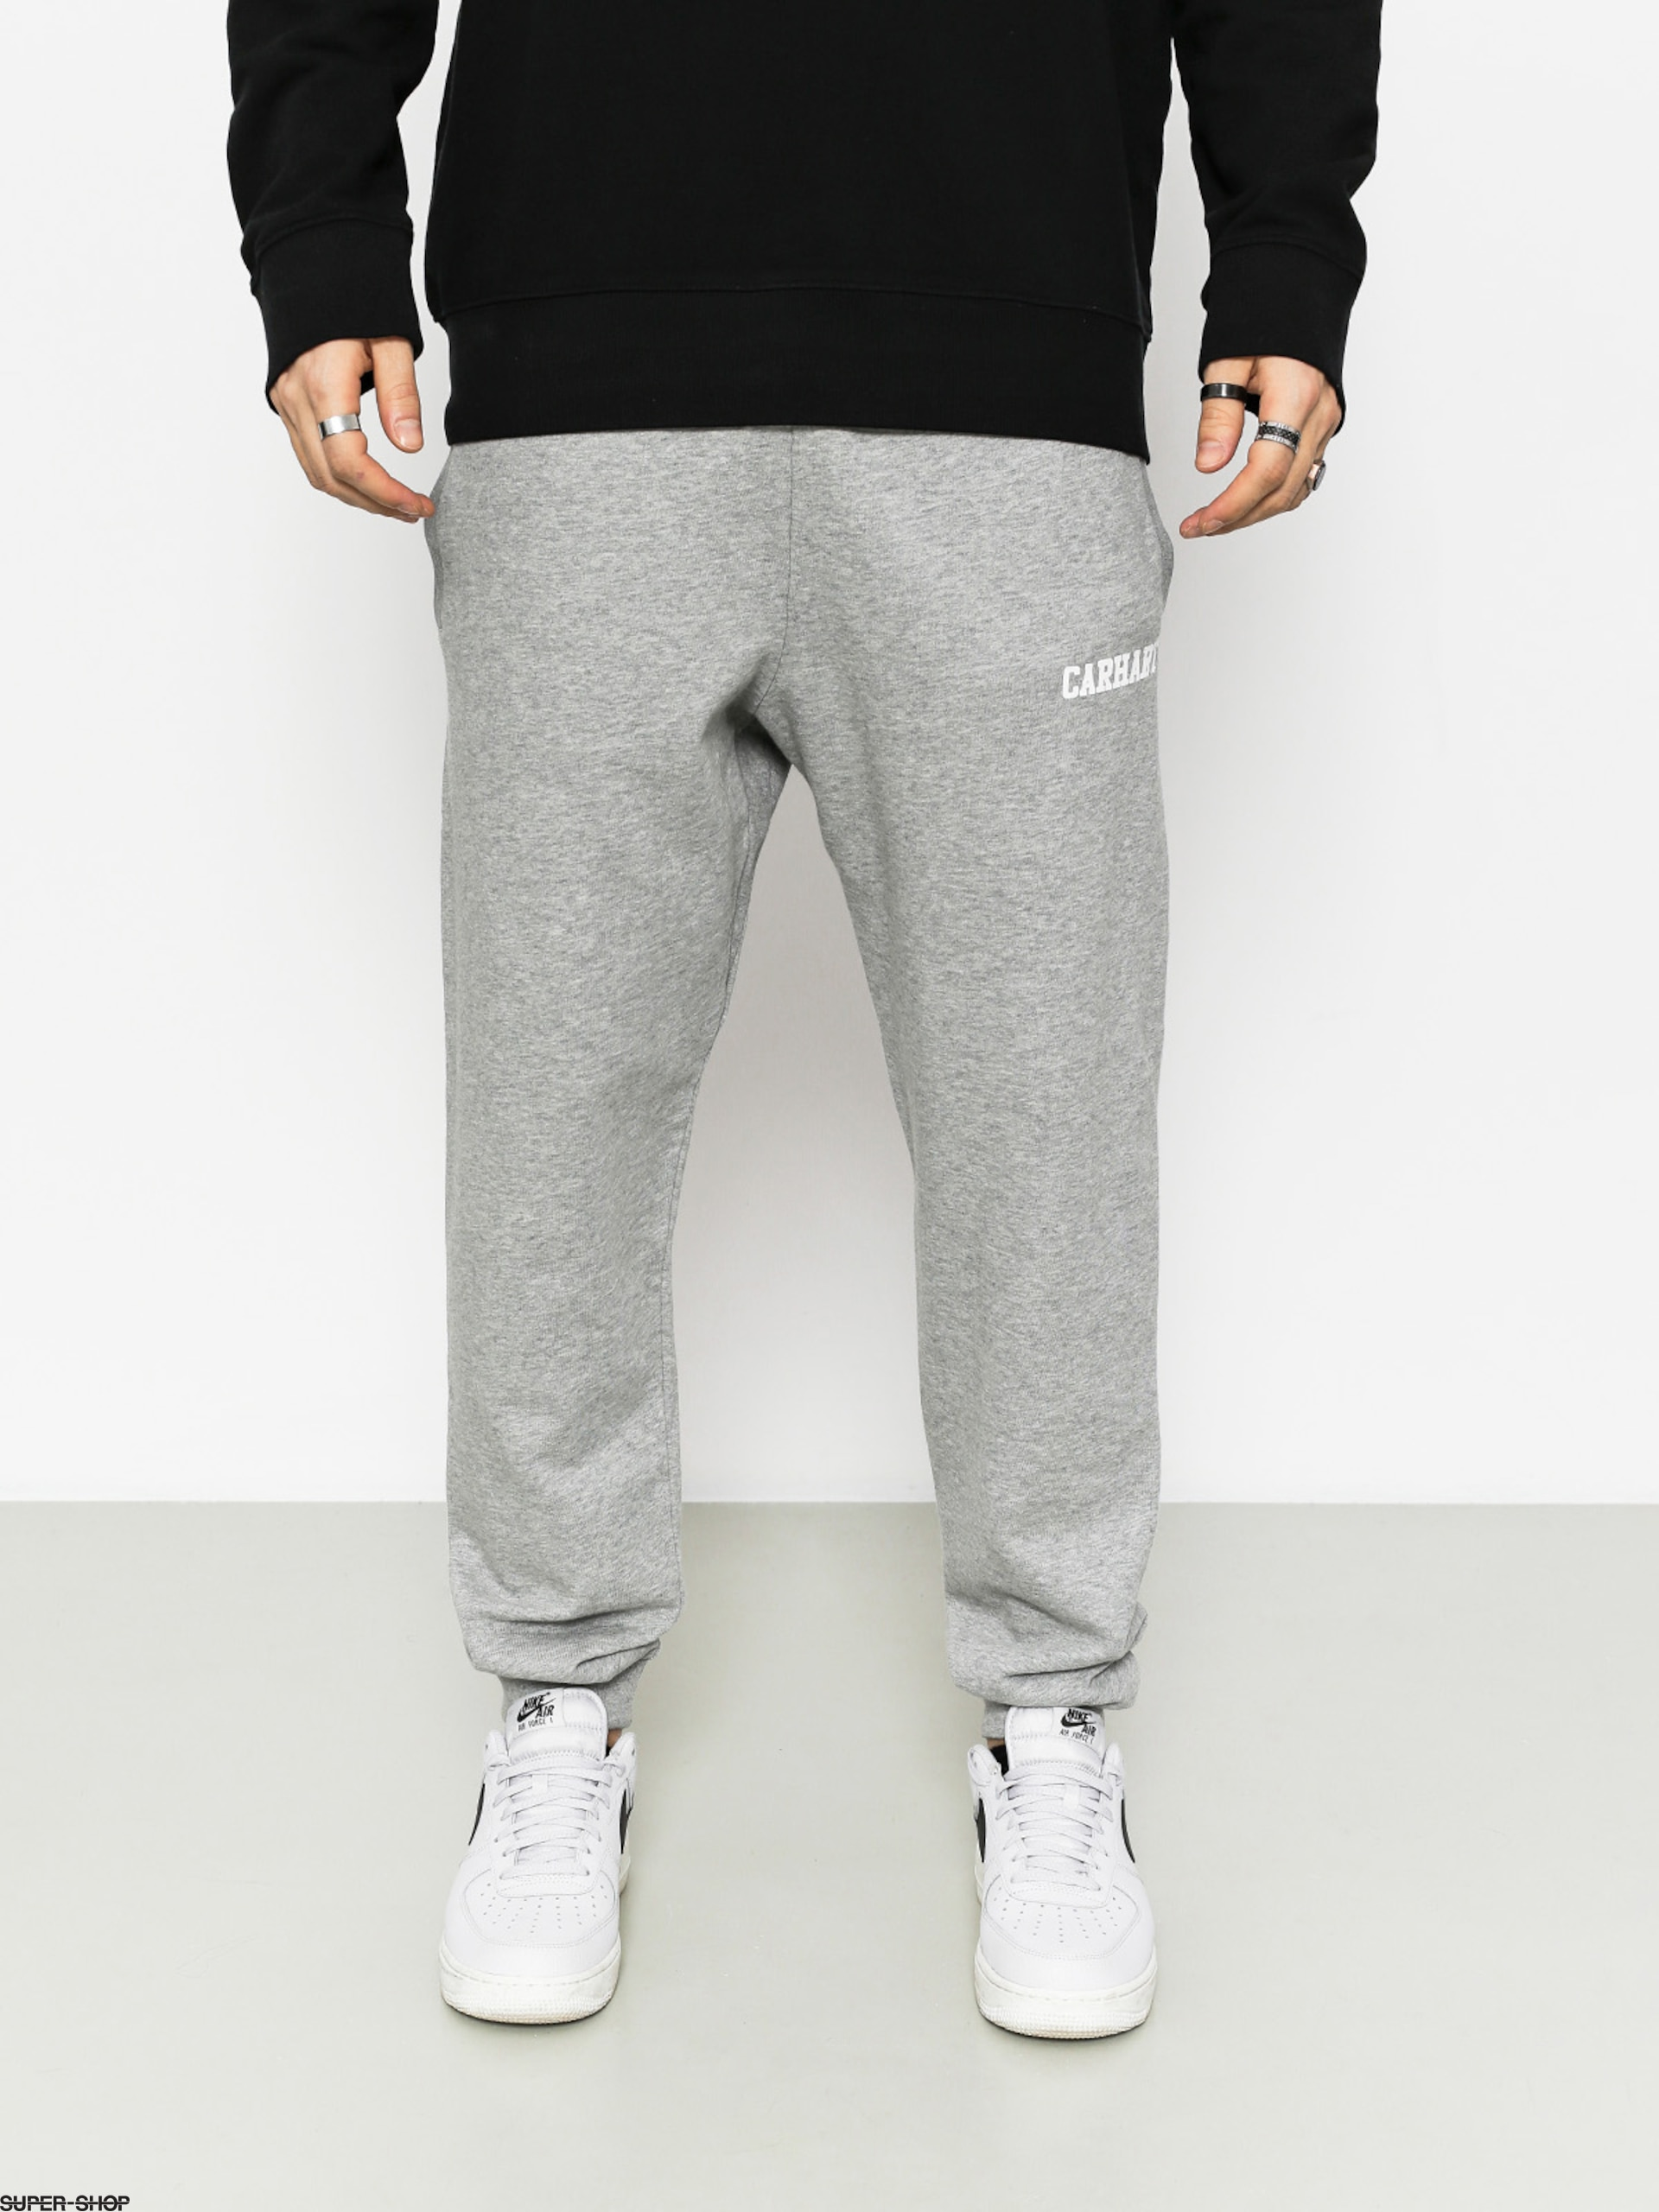 Carhartt Pants College (grey heather/white)